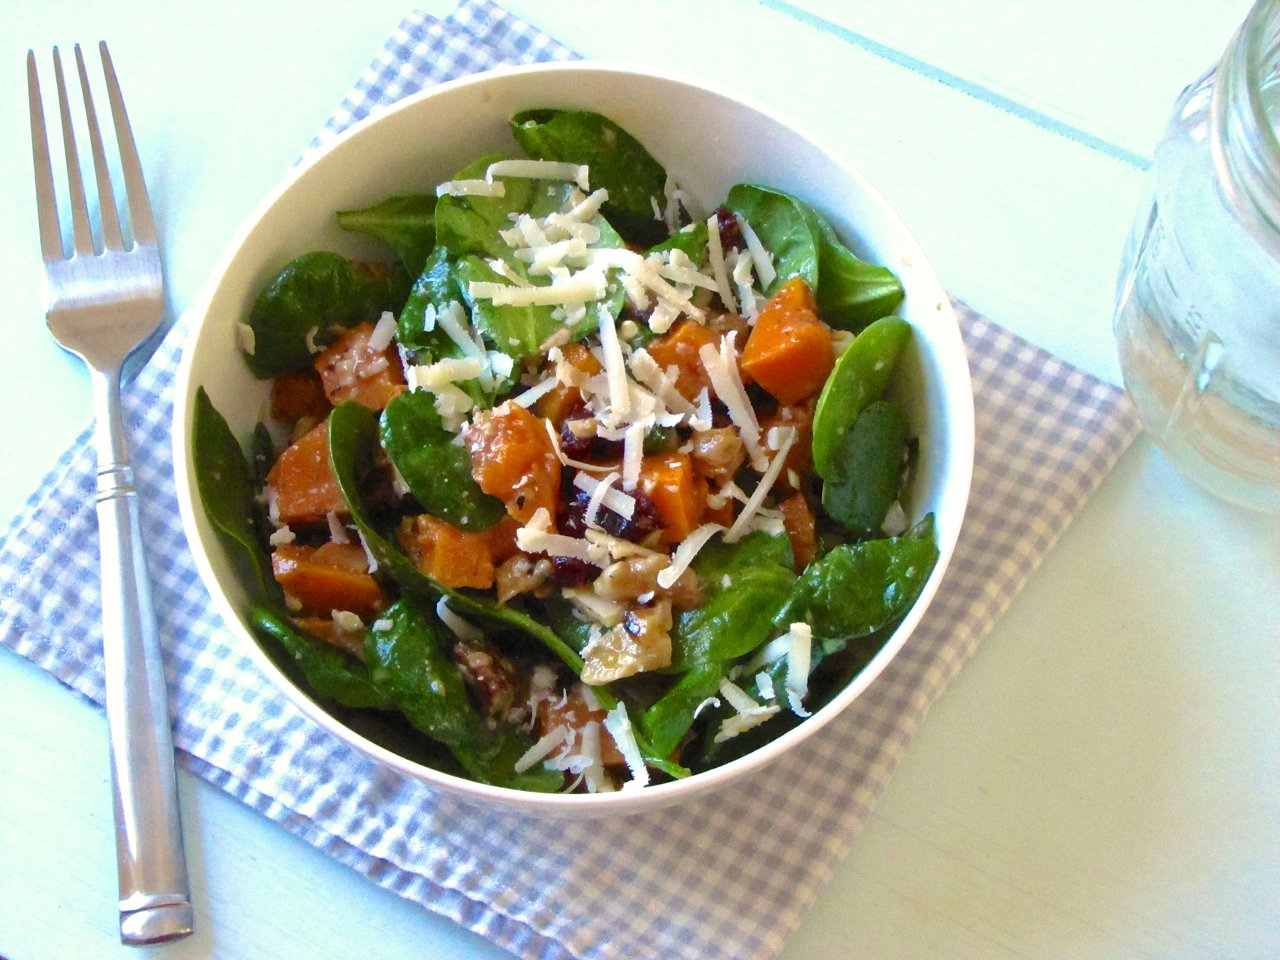 Roasted Sweet Potato Salad with Warm Cider Vinaigrette